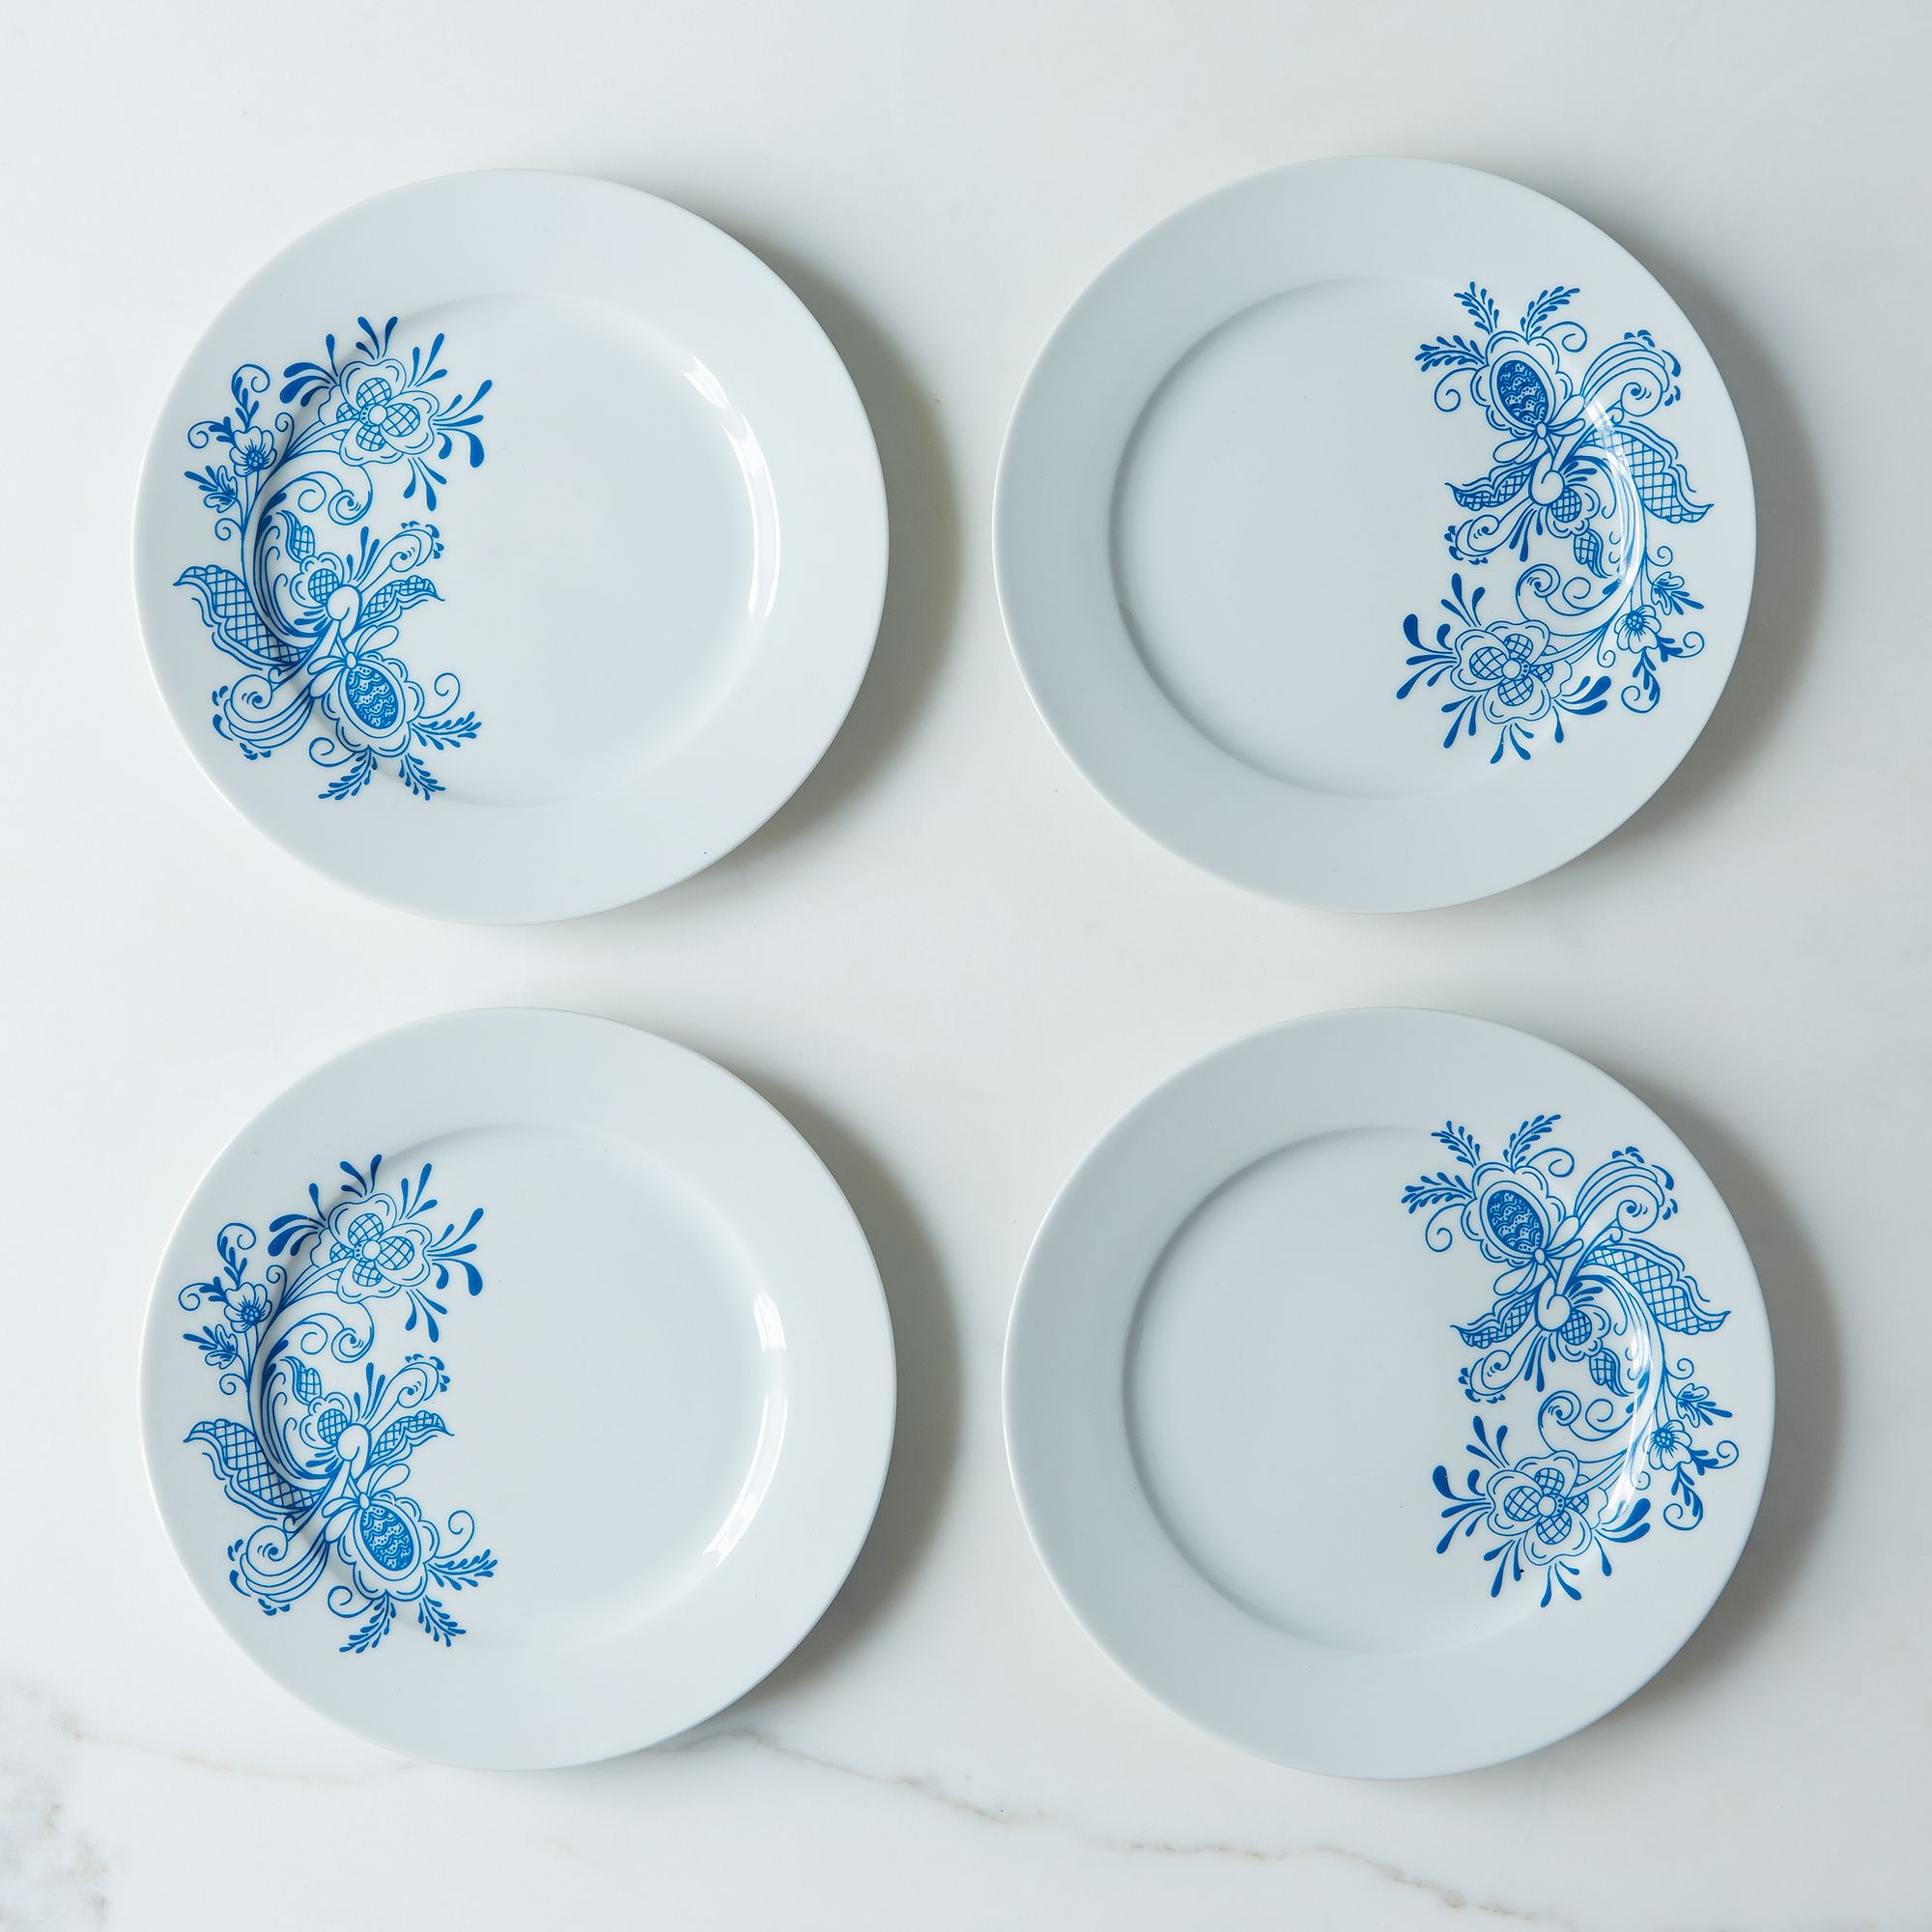 Dinnerware by Elicia McGinn